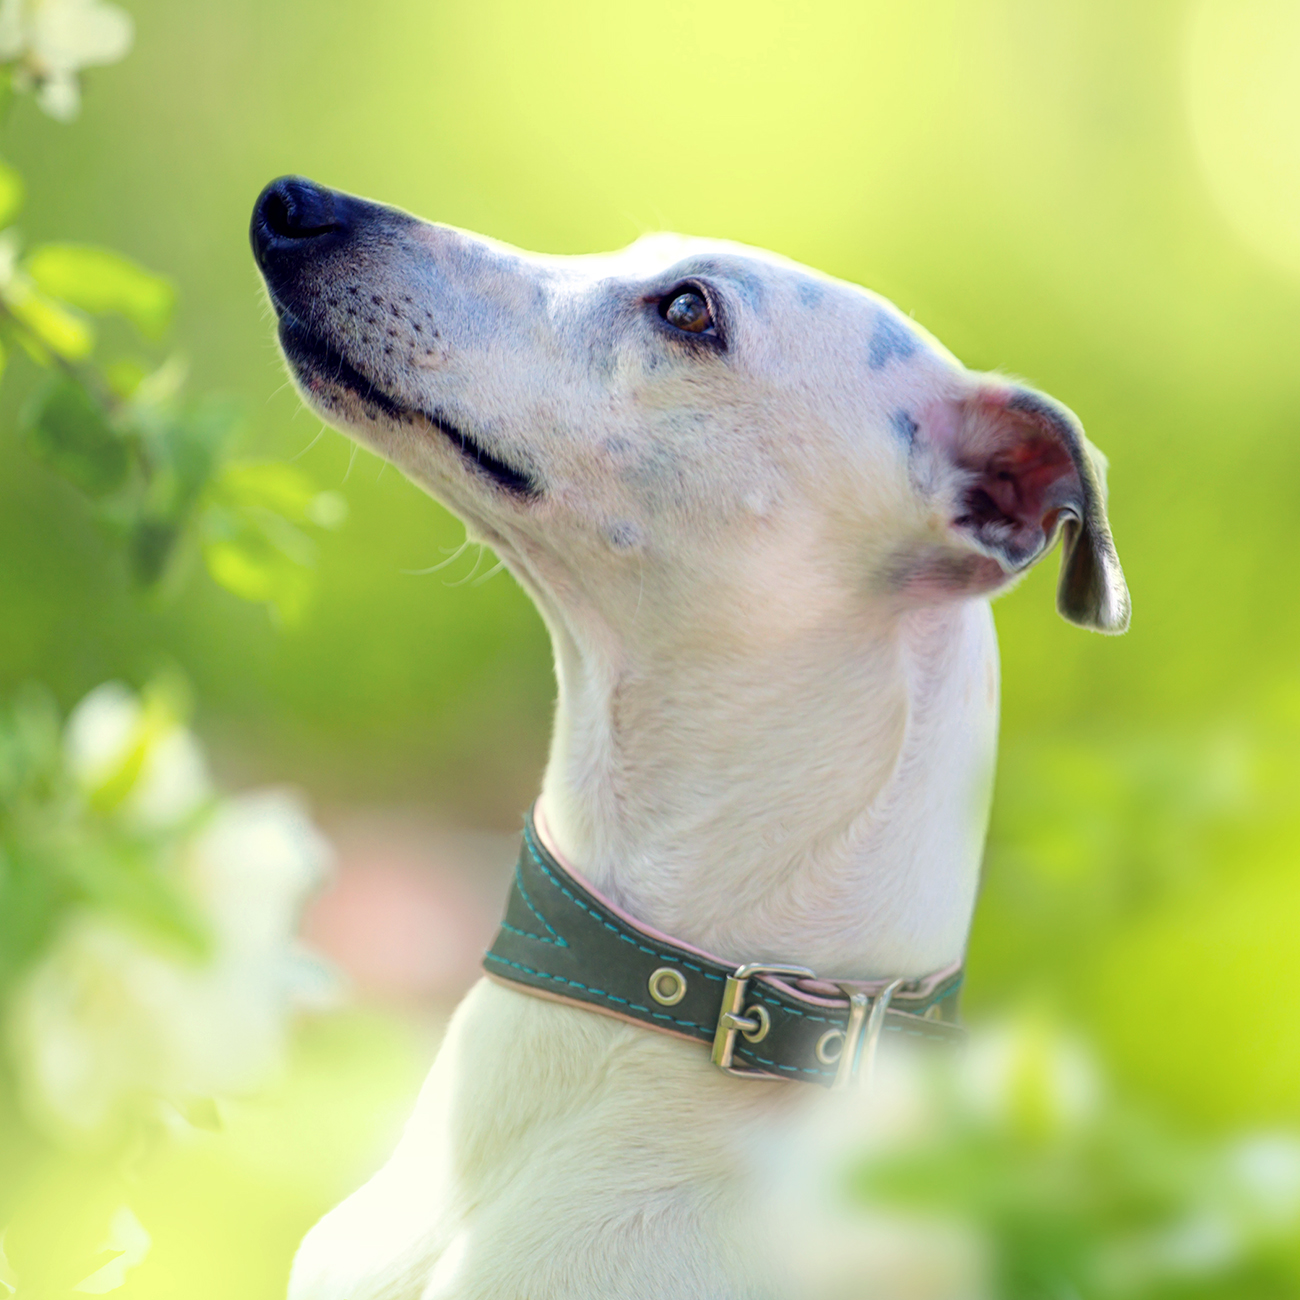 White Whippet dog profile looking up